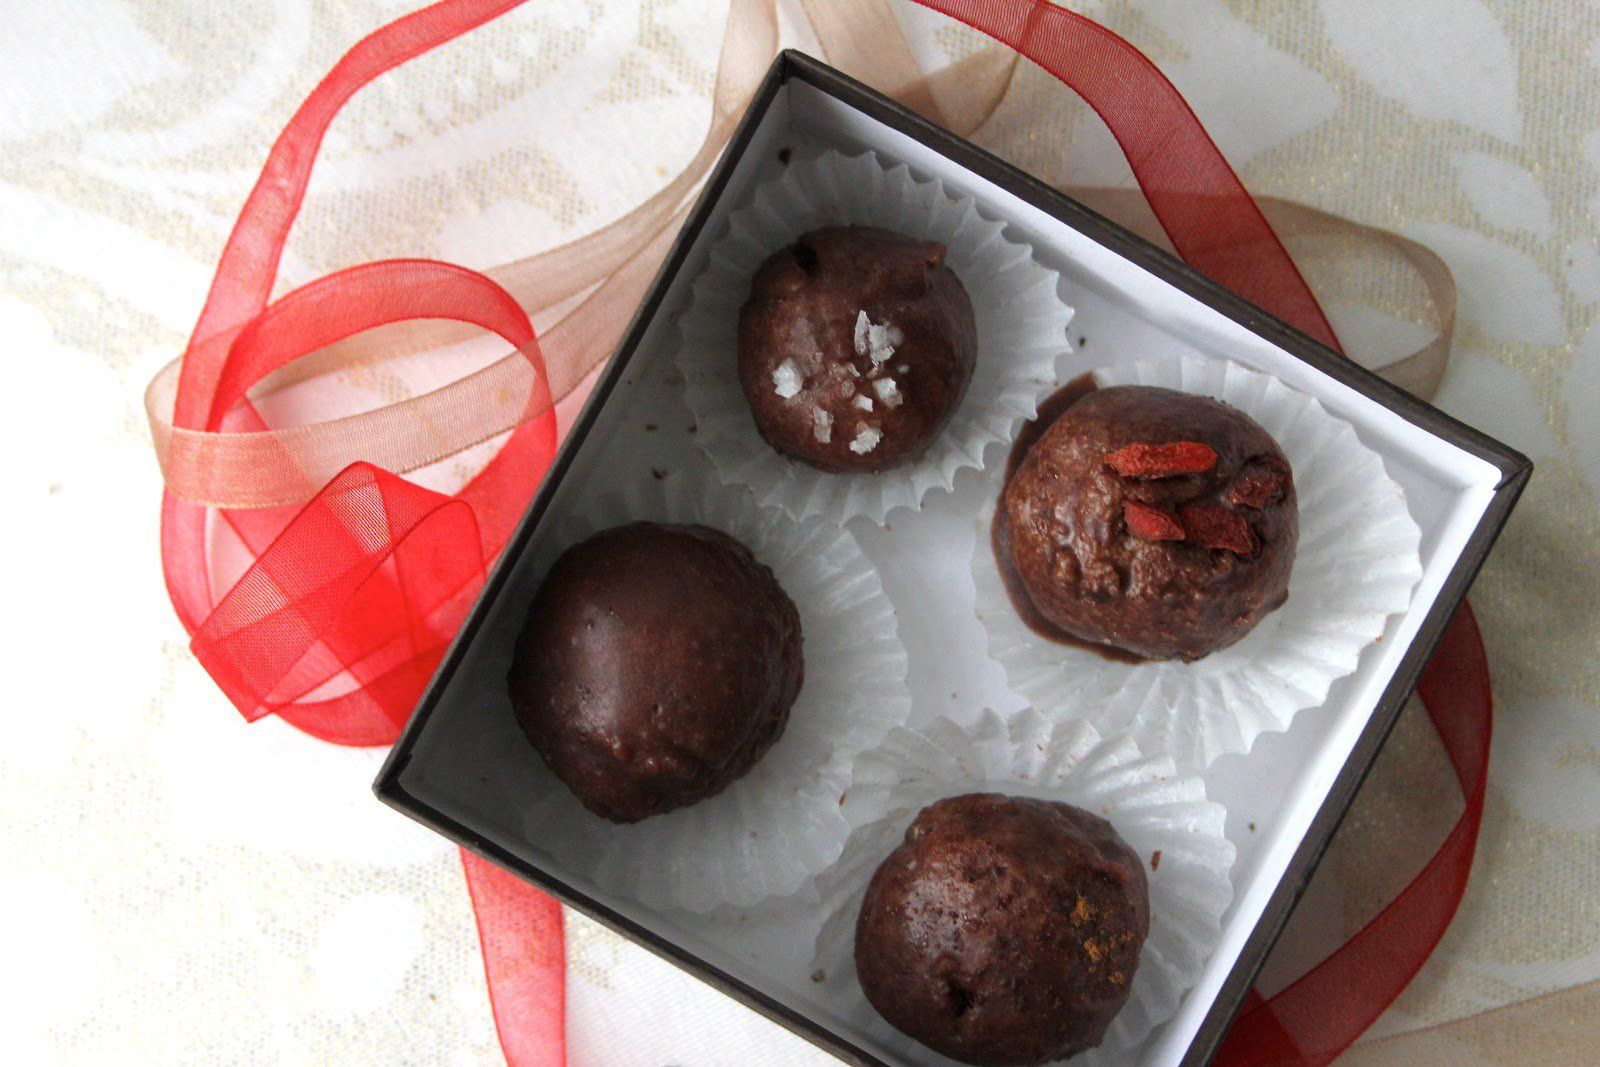 These chocolate truffles have the nutty taste of hazelnut infused within them. Best of all, it's all raw!